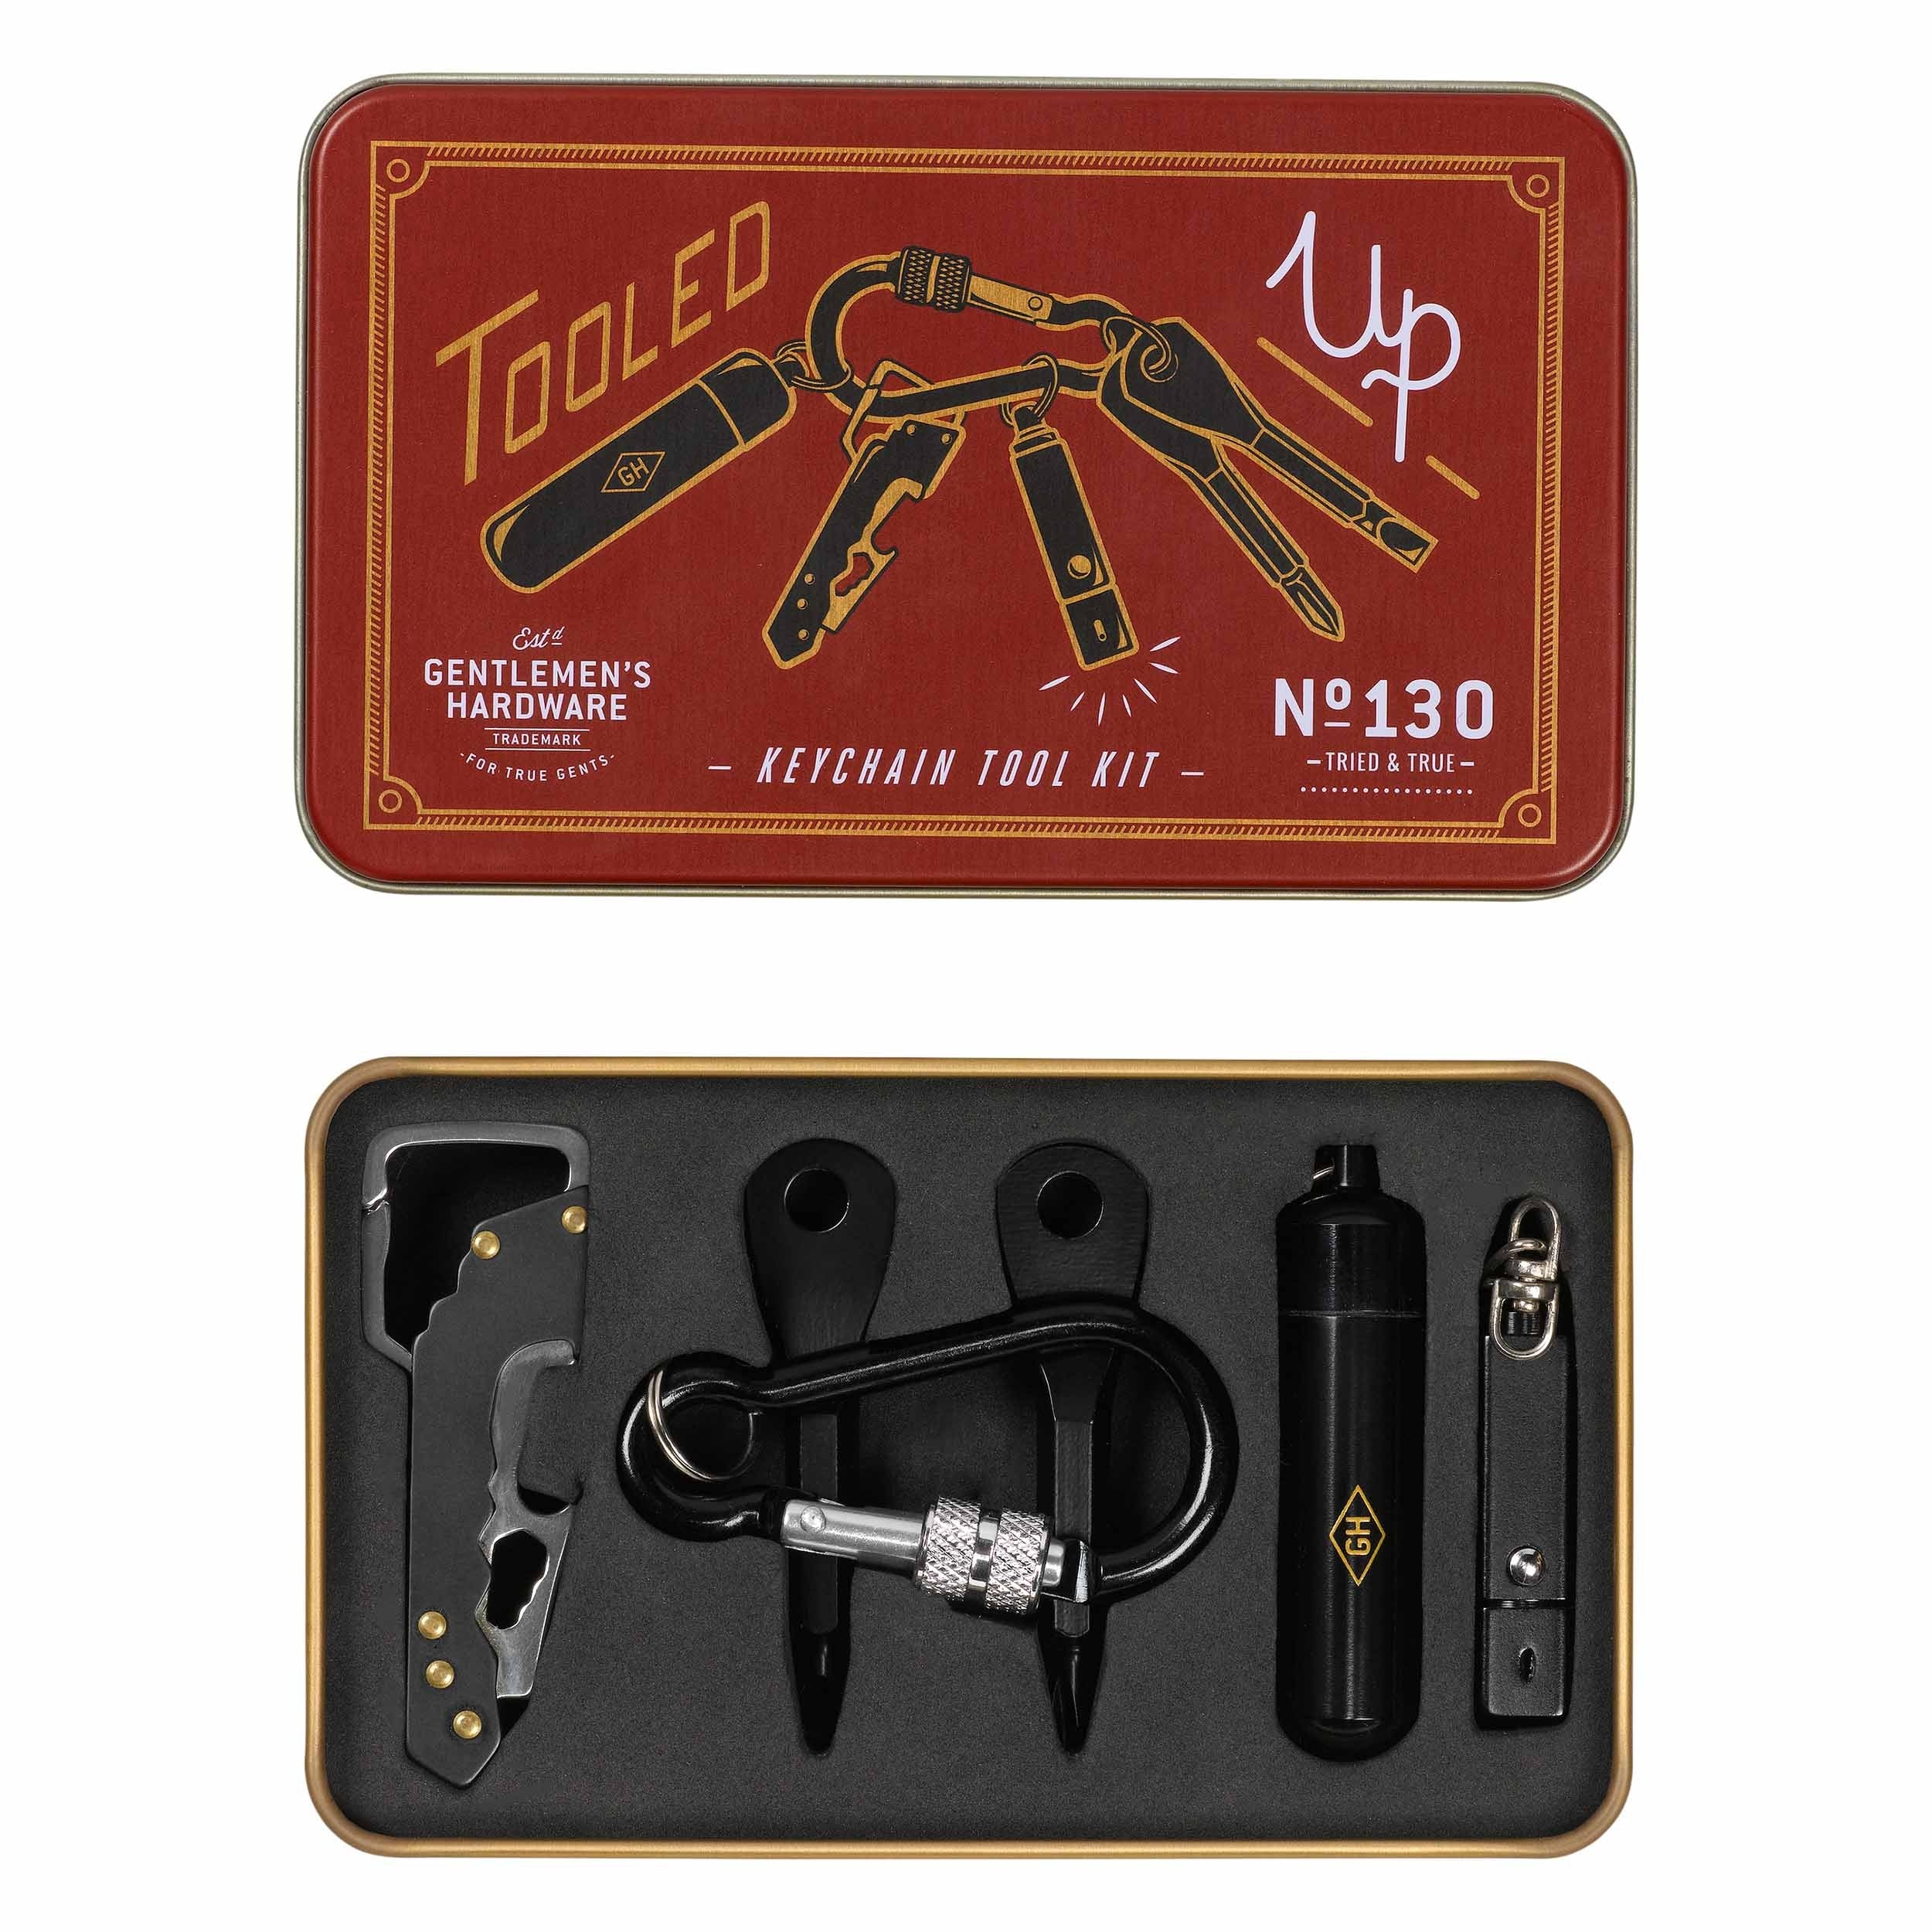 Gentleman's Hardware - Key Chain Tool Kit